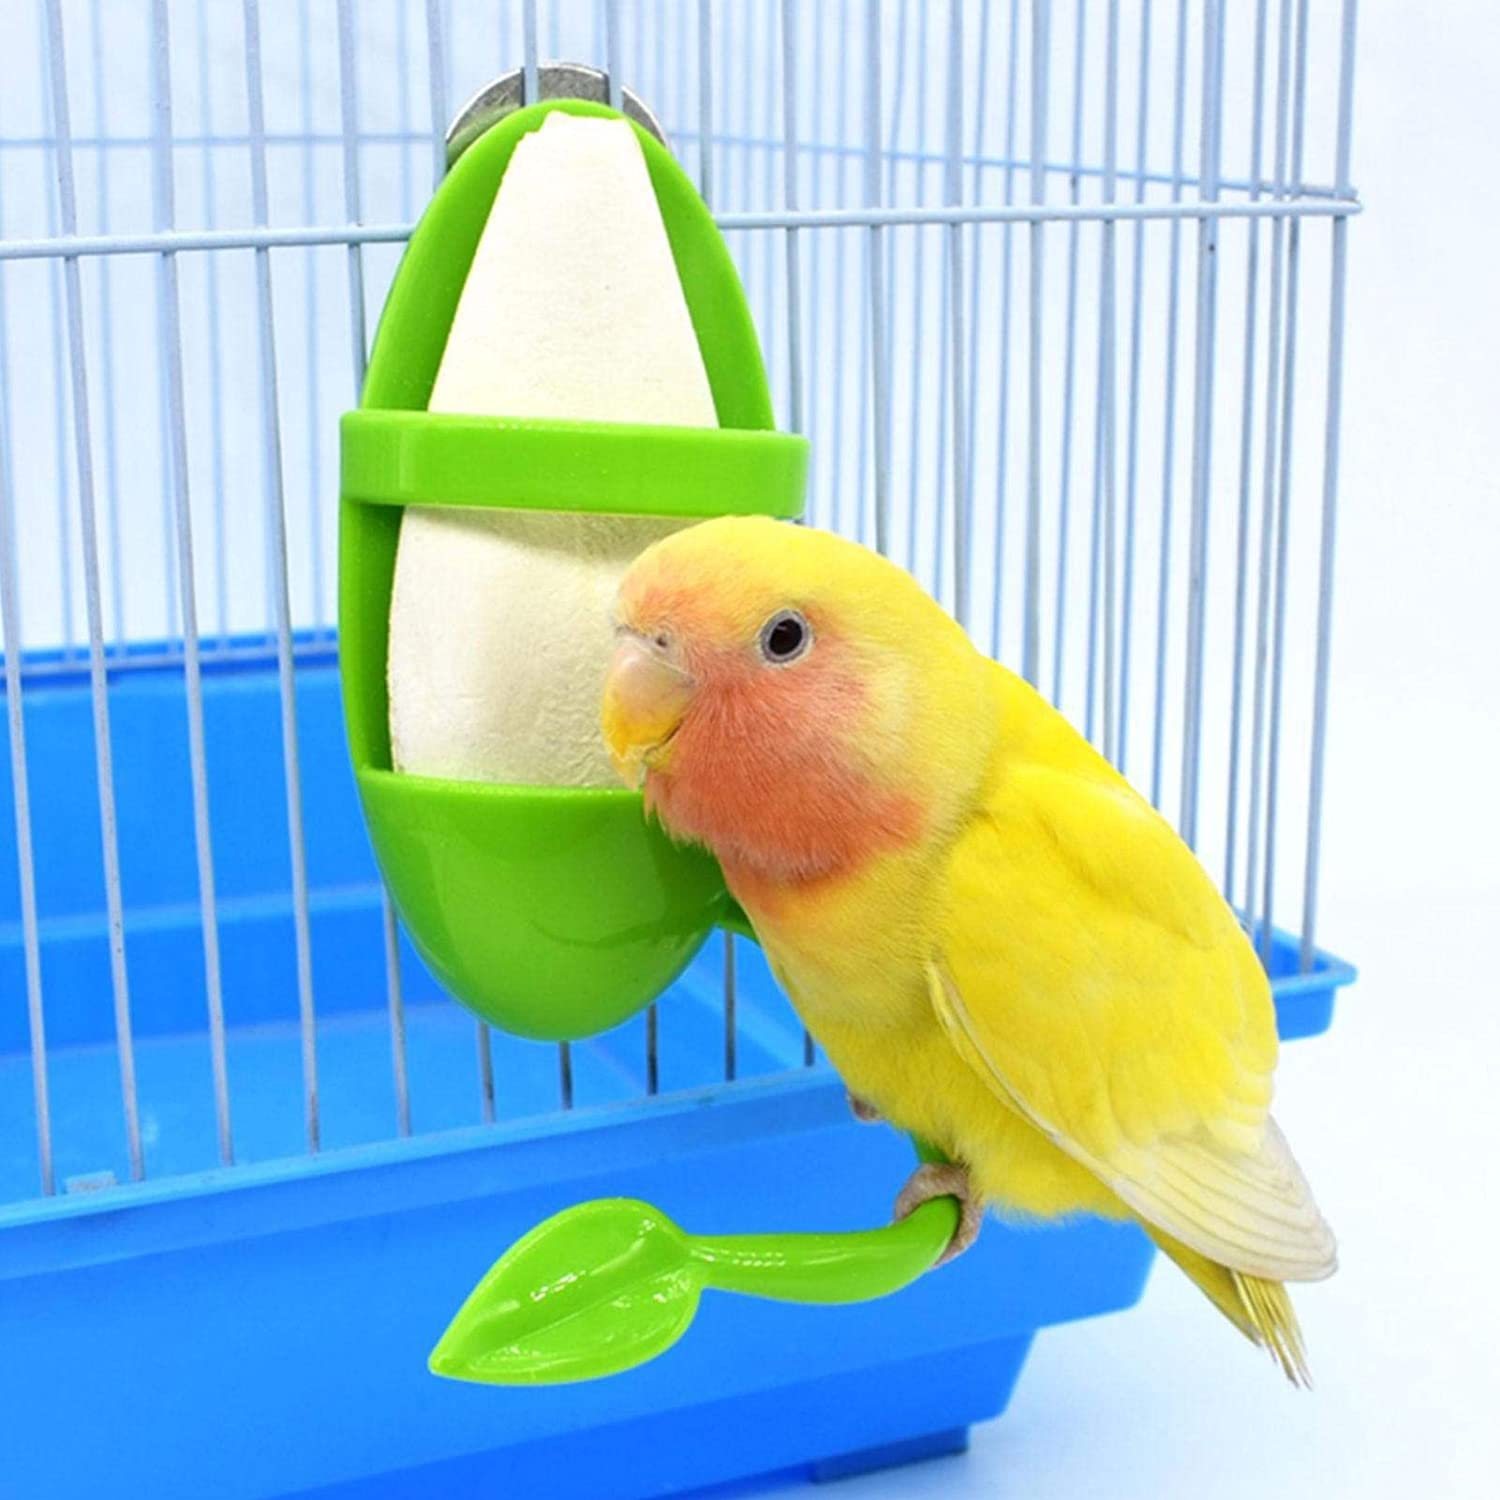 SHZONS Parrot Bird Today's only Food Pole Feeder Popular Container V